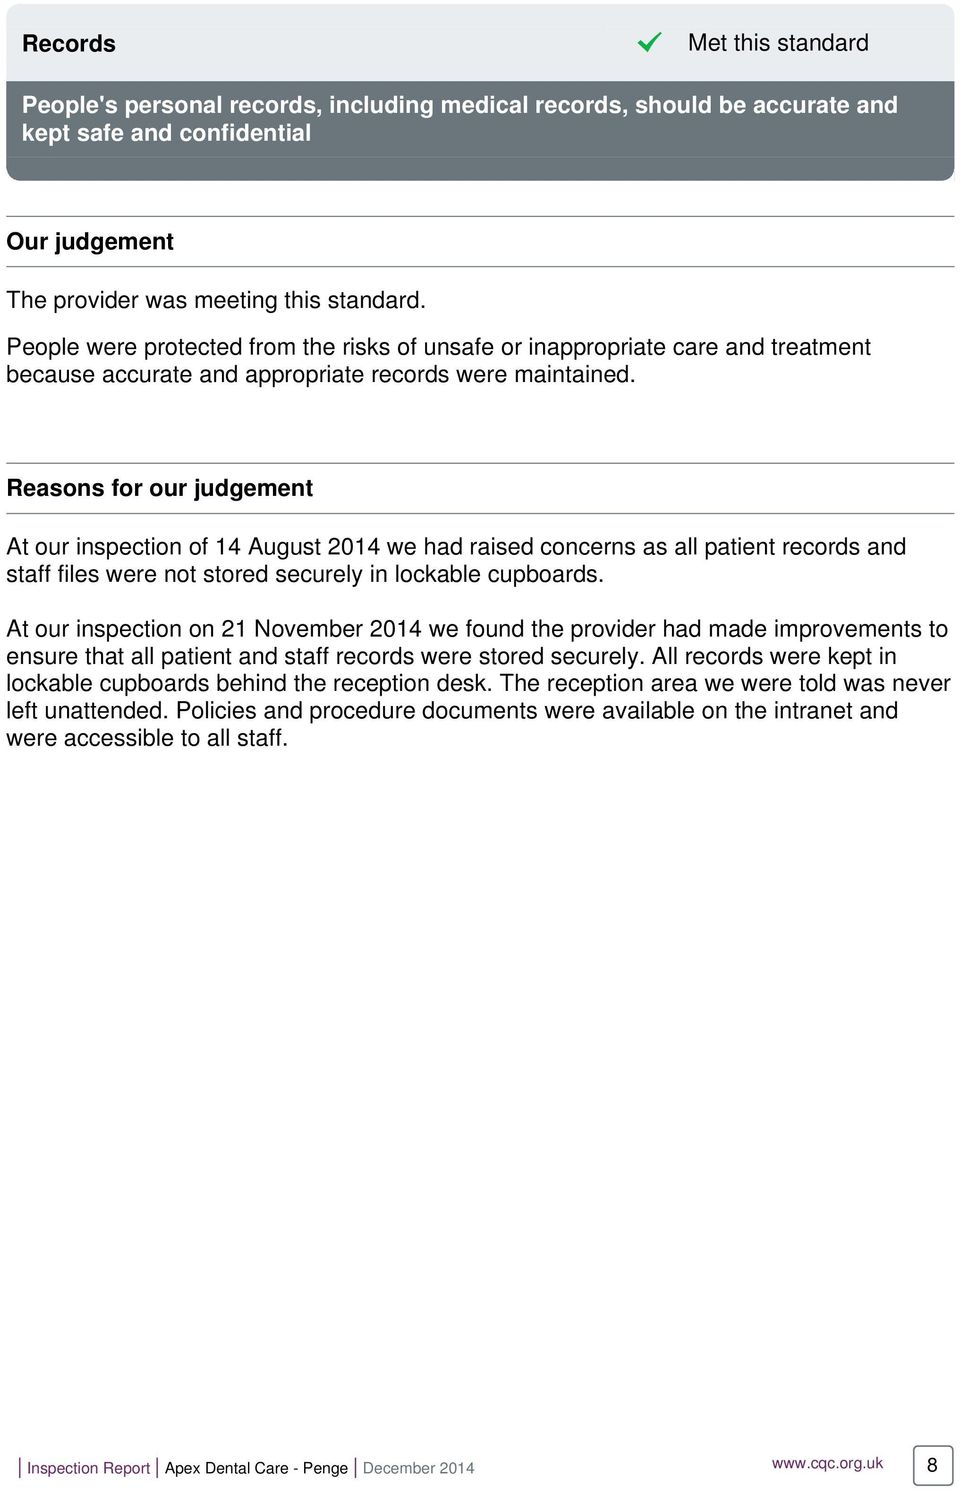 Reasons for our judgement At our inspection of 14 August 2014 we had raised concerns as all patient records and staff files were not stored securely in lockable cupboards.